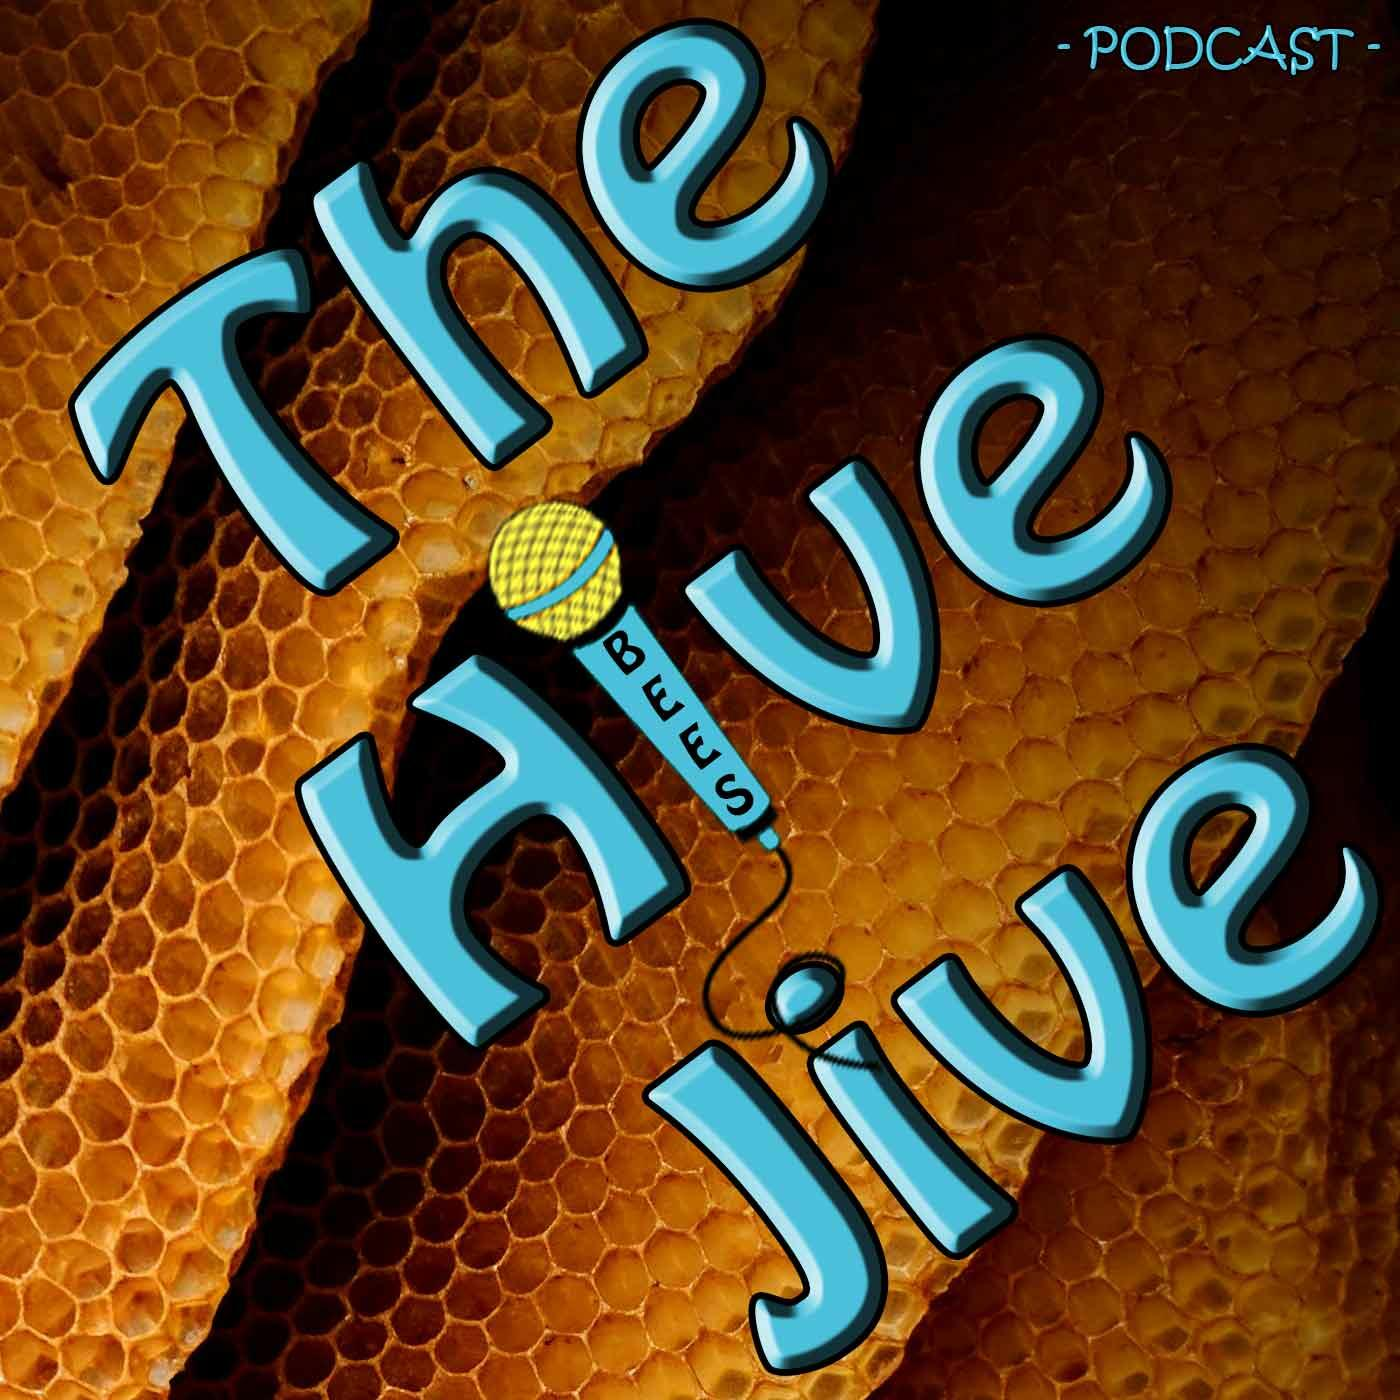 Listen Free to The Hive Jive